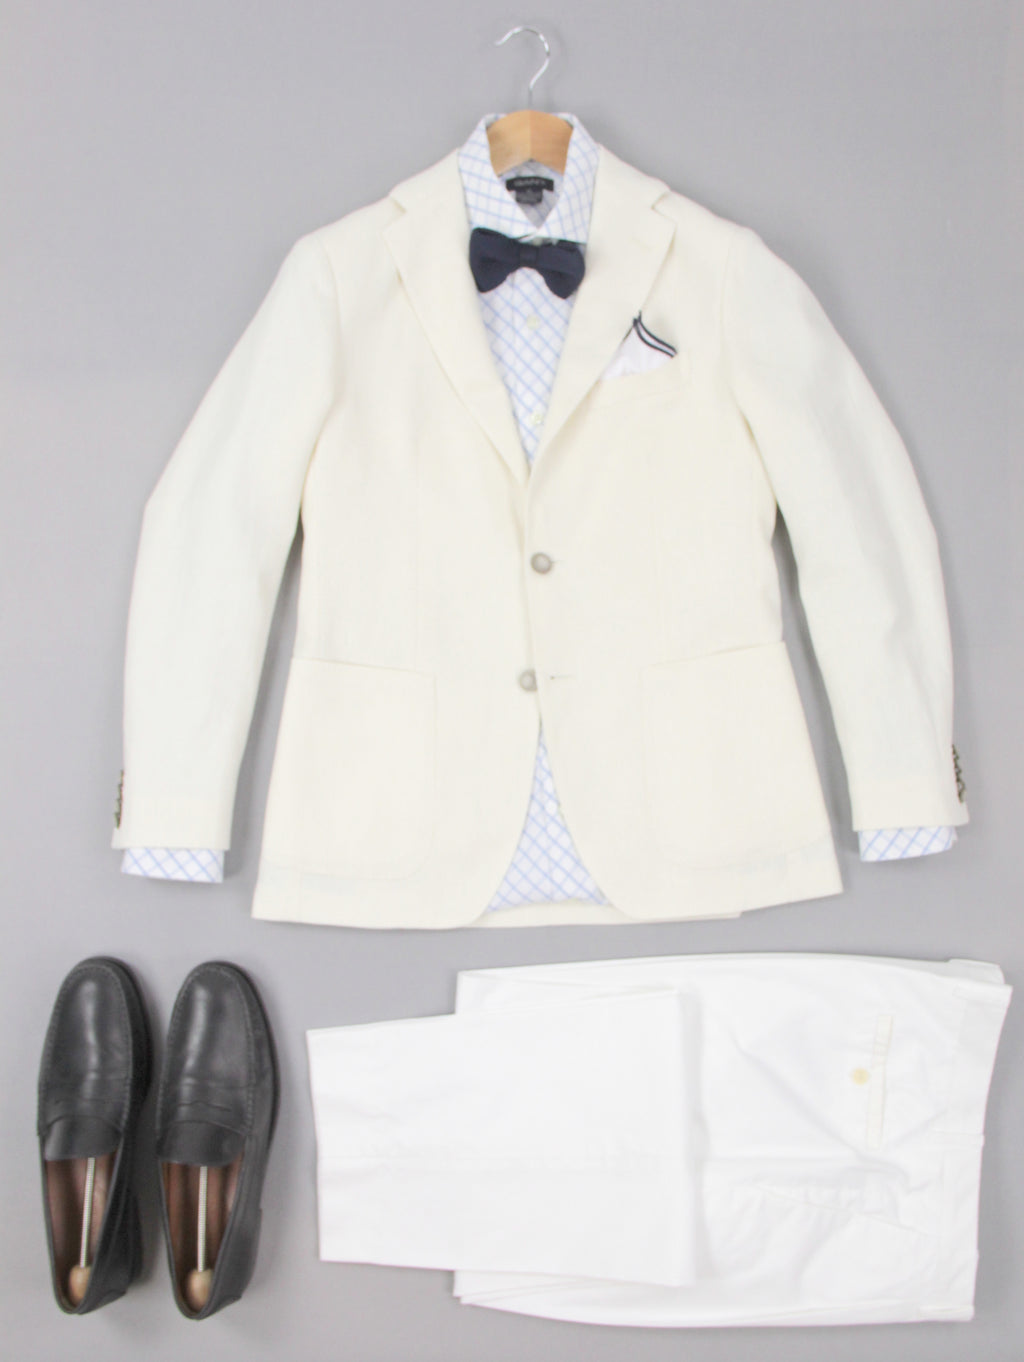 Tagliatore Cream White Linen Blend 2 Button Sport Coat Blazer US 34R, EU 44R